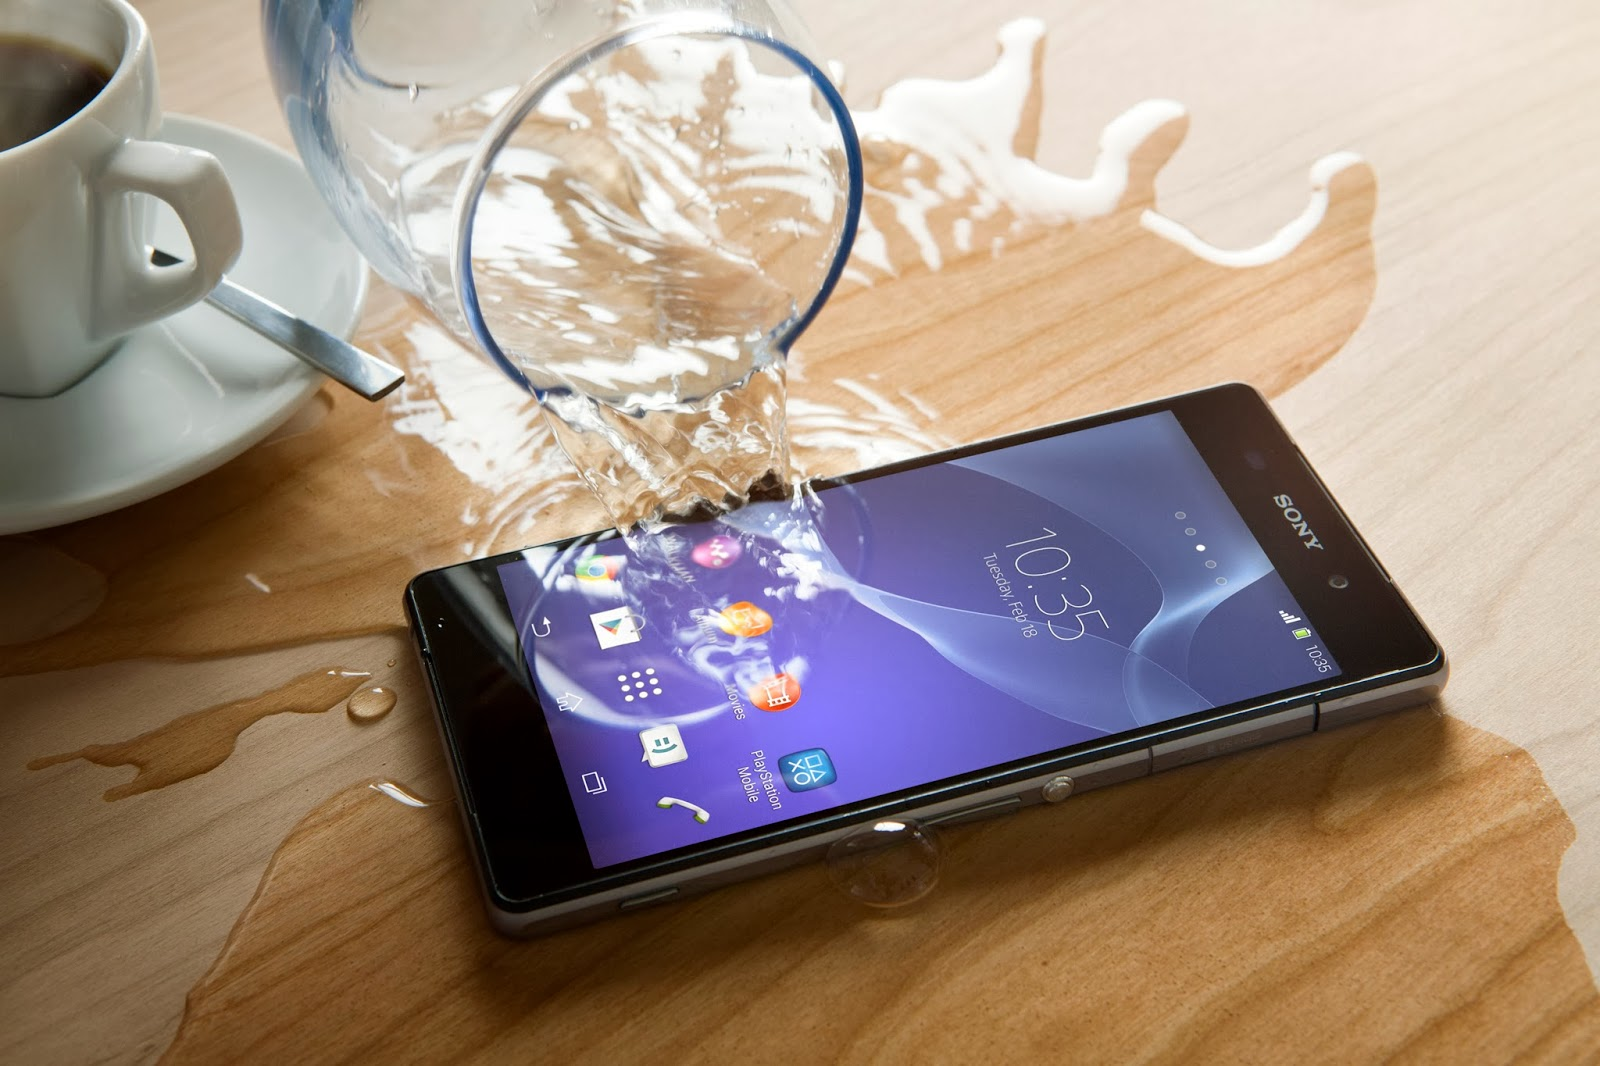 Sony Xperia Z2 Water proof